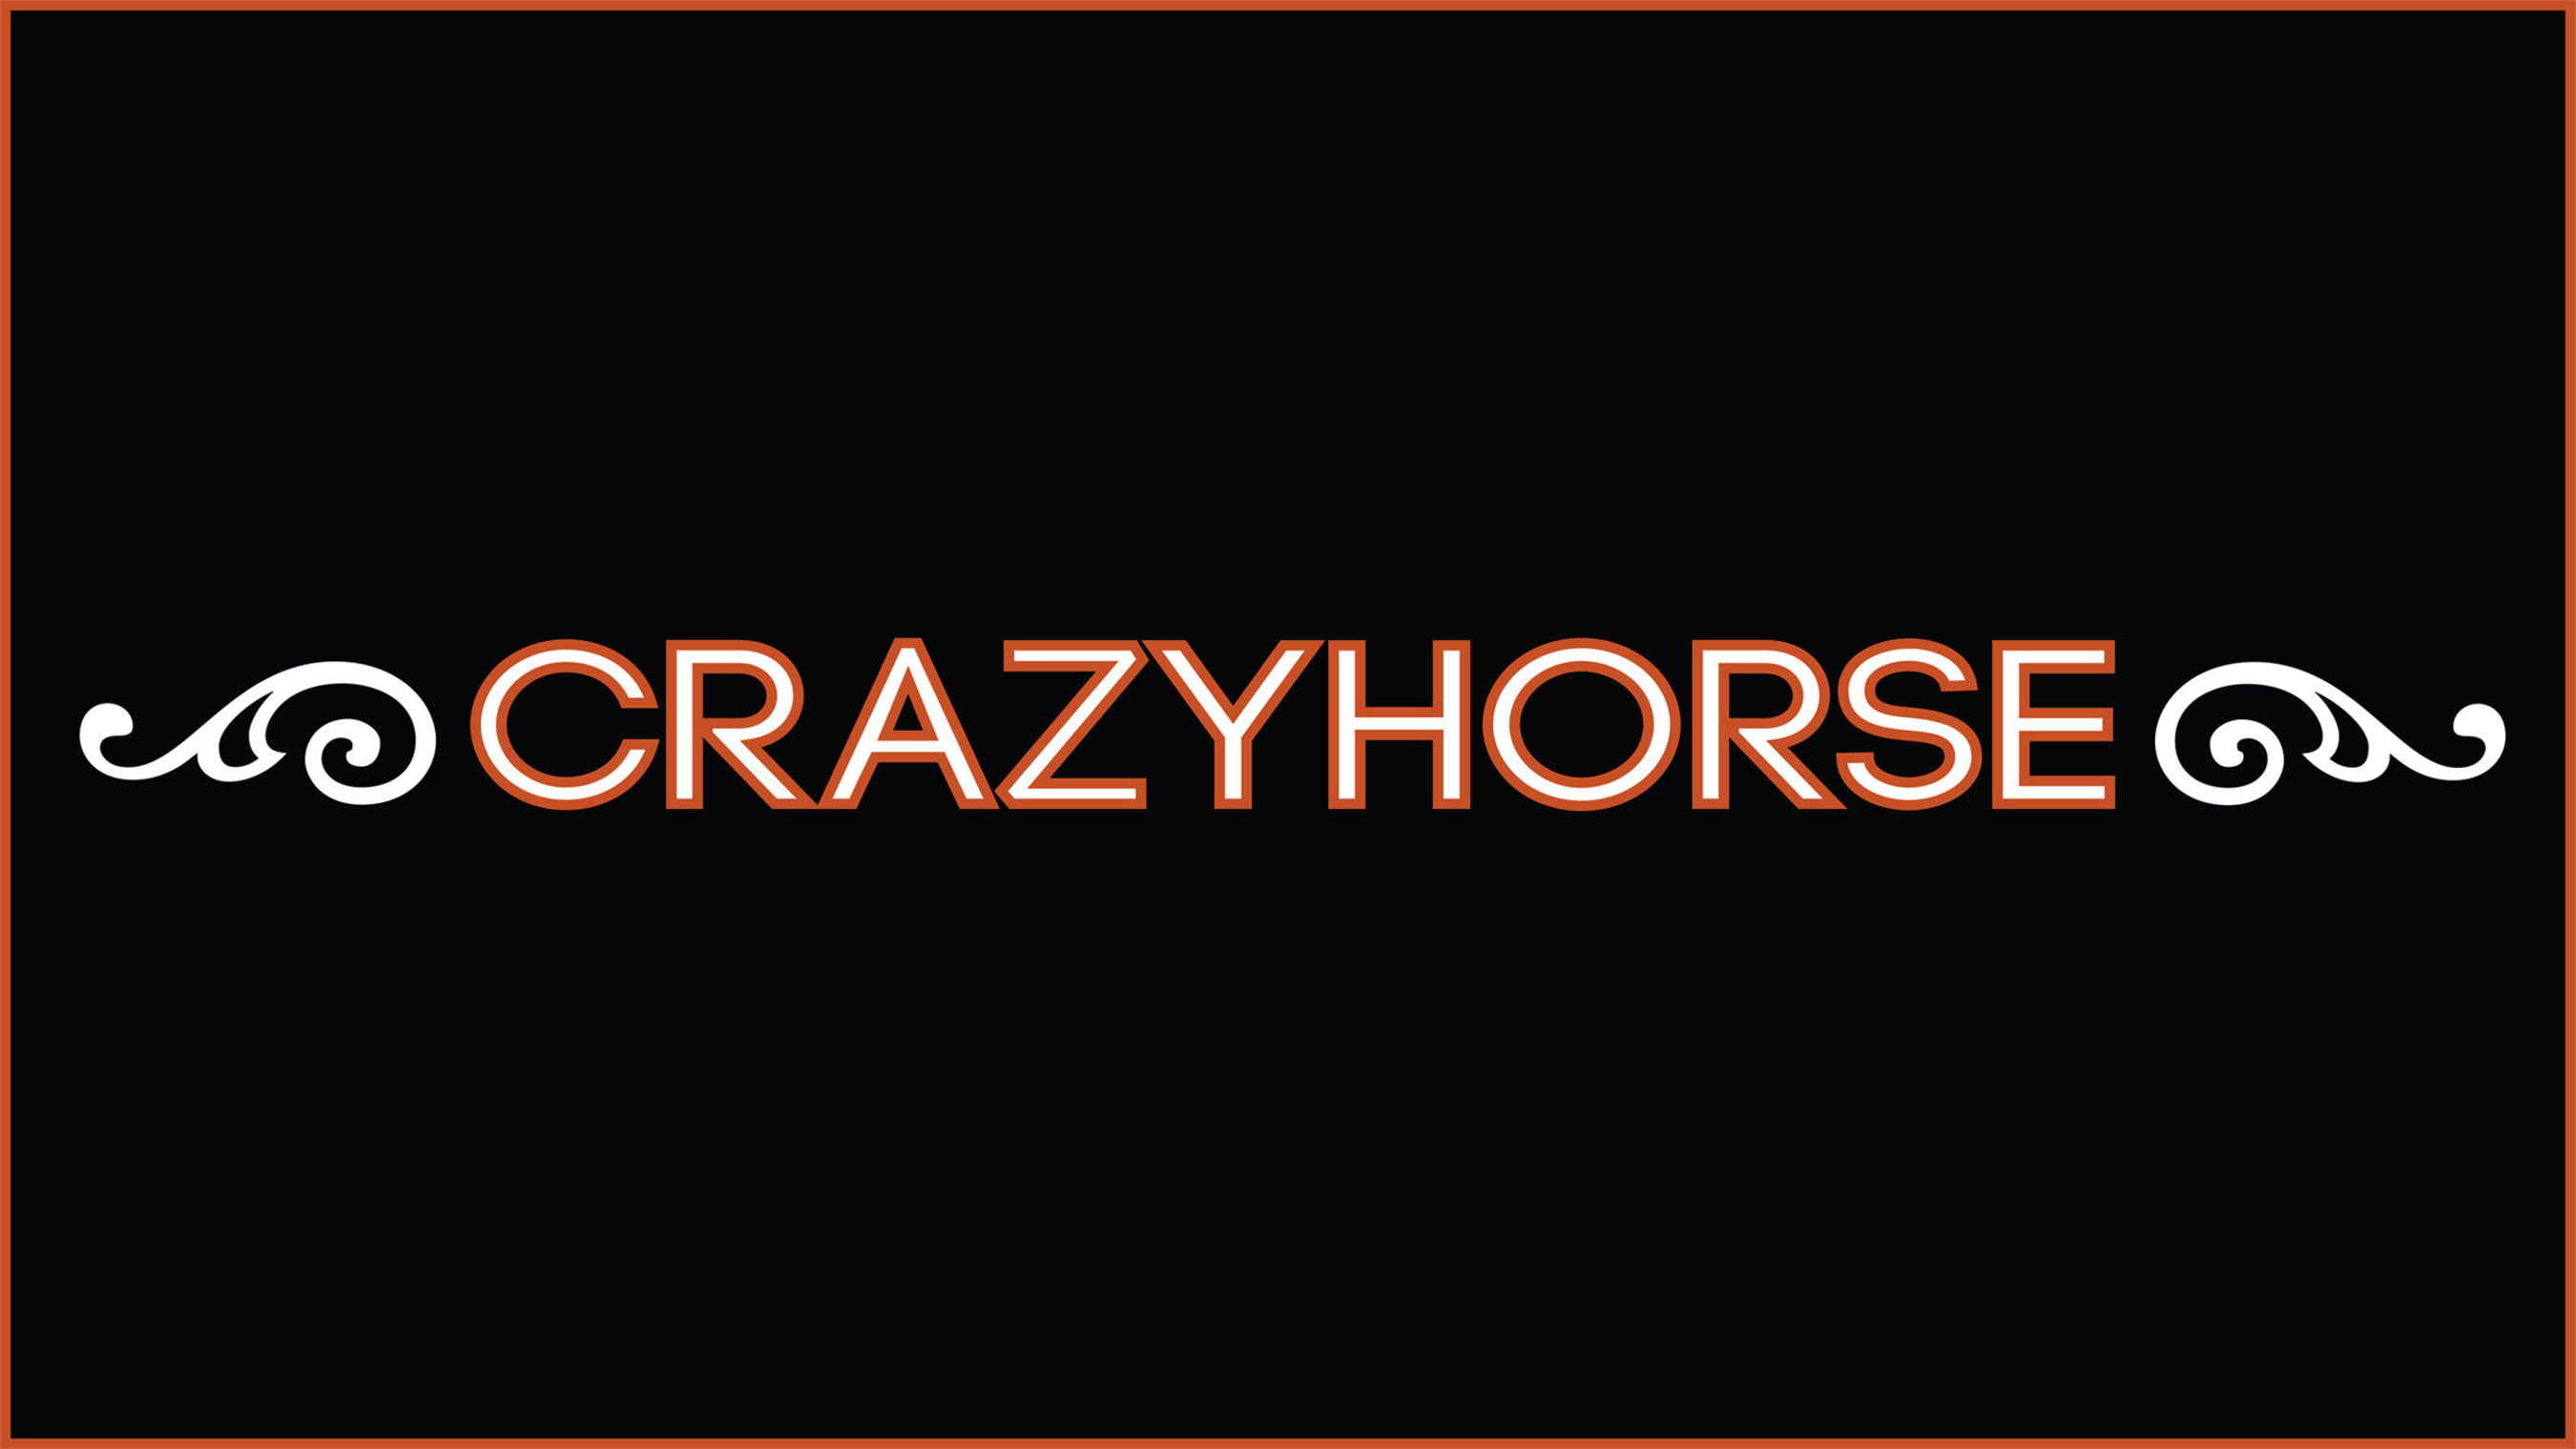 'Teen Mom' Farrah Abraham Hosts Crazy Horse Grand Opening Party March 21 in Pompano Beach